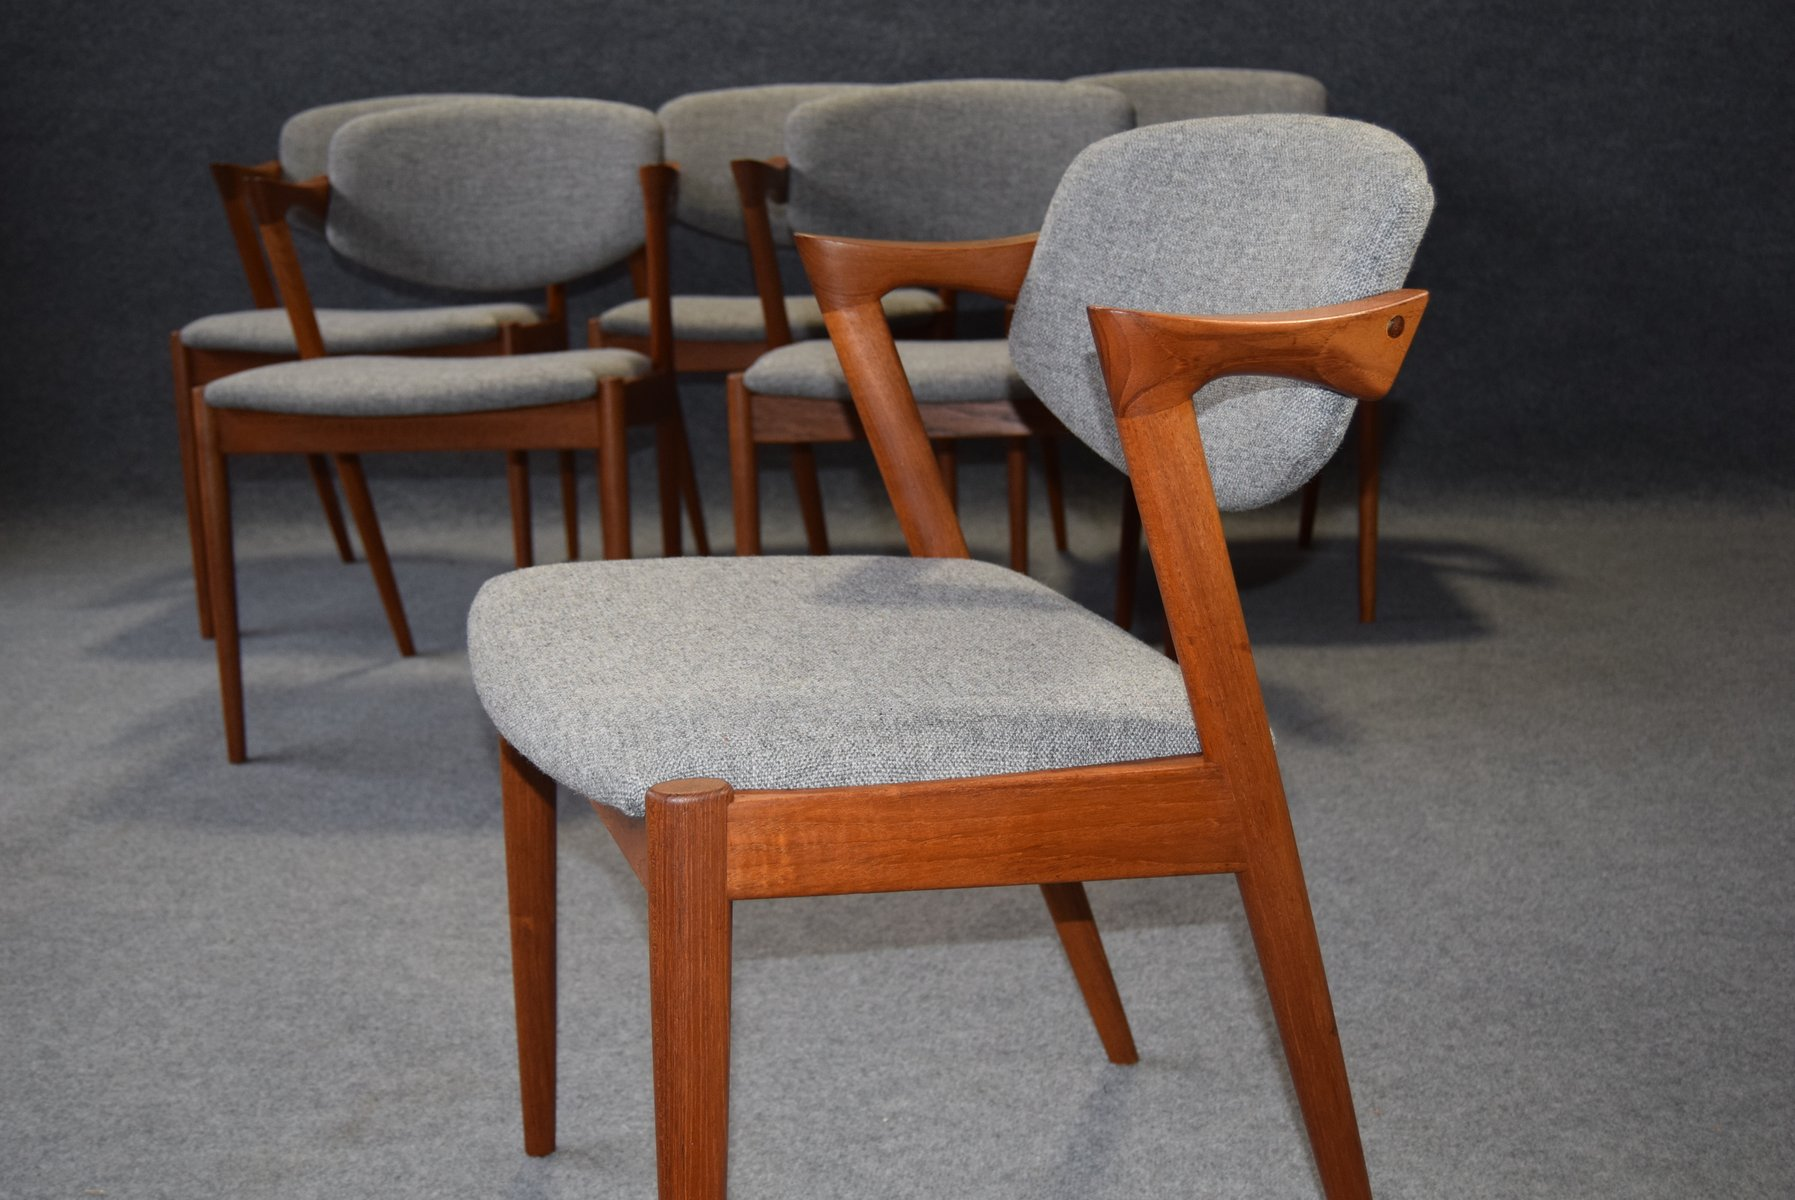 Mid Century Model 32 Dining Chairs By Kai Kristiansen For Schou Andersen Set Of 6 For Sale At